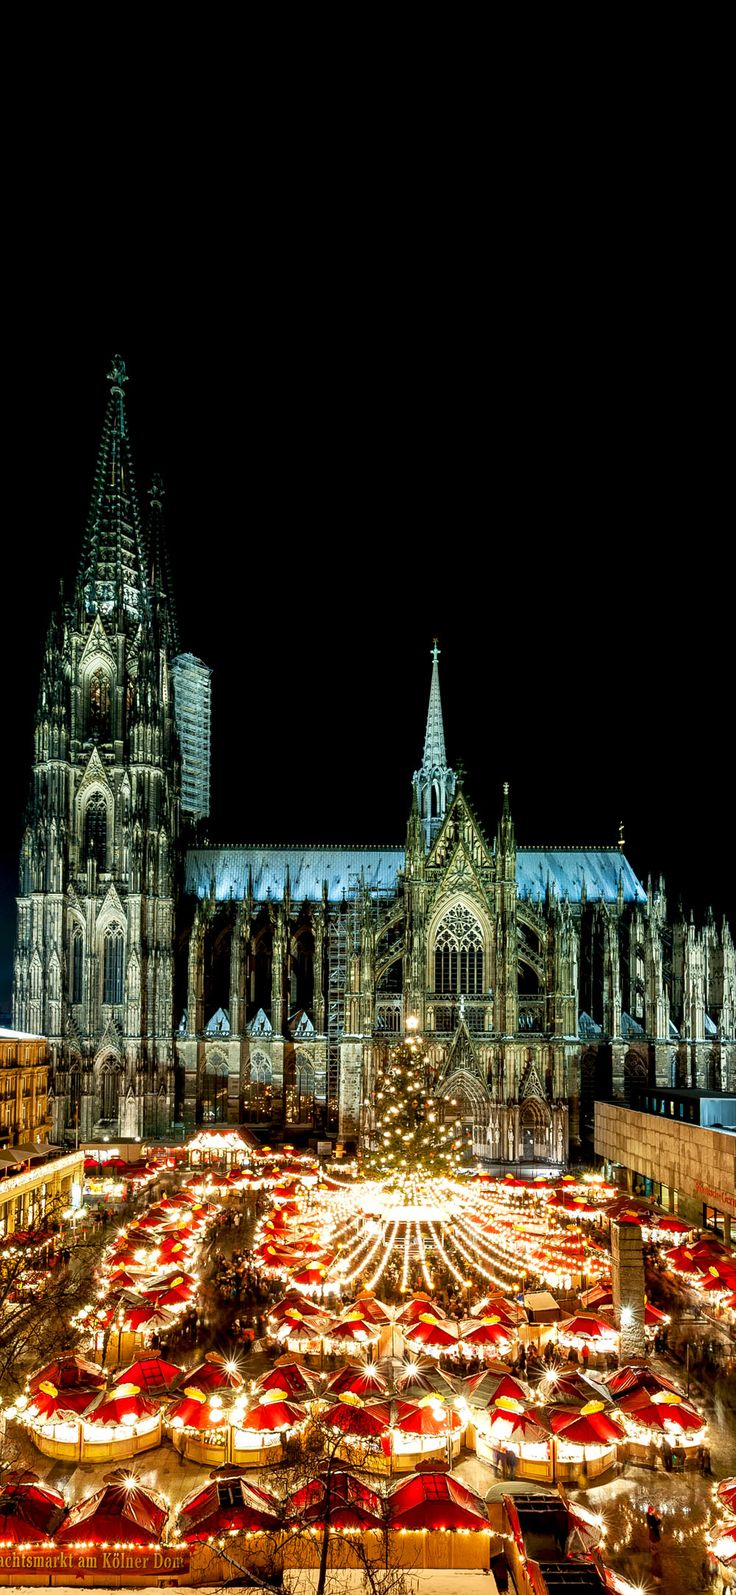 Cologne Christmas Market at night with Cathedral in the back.